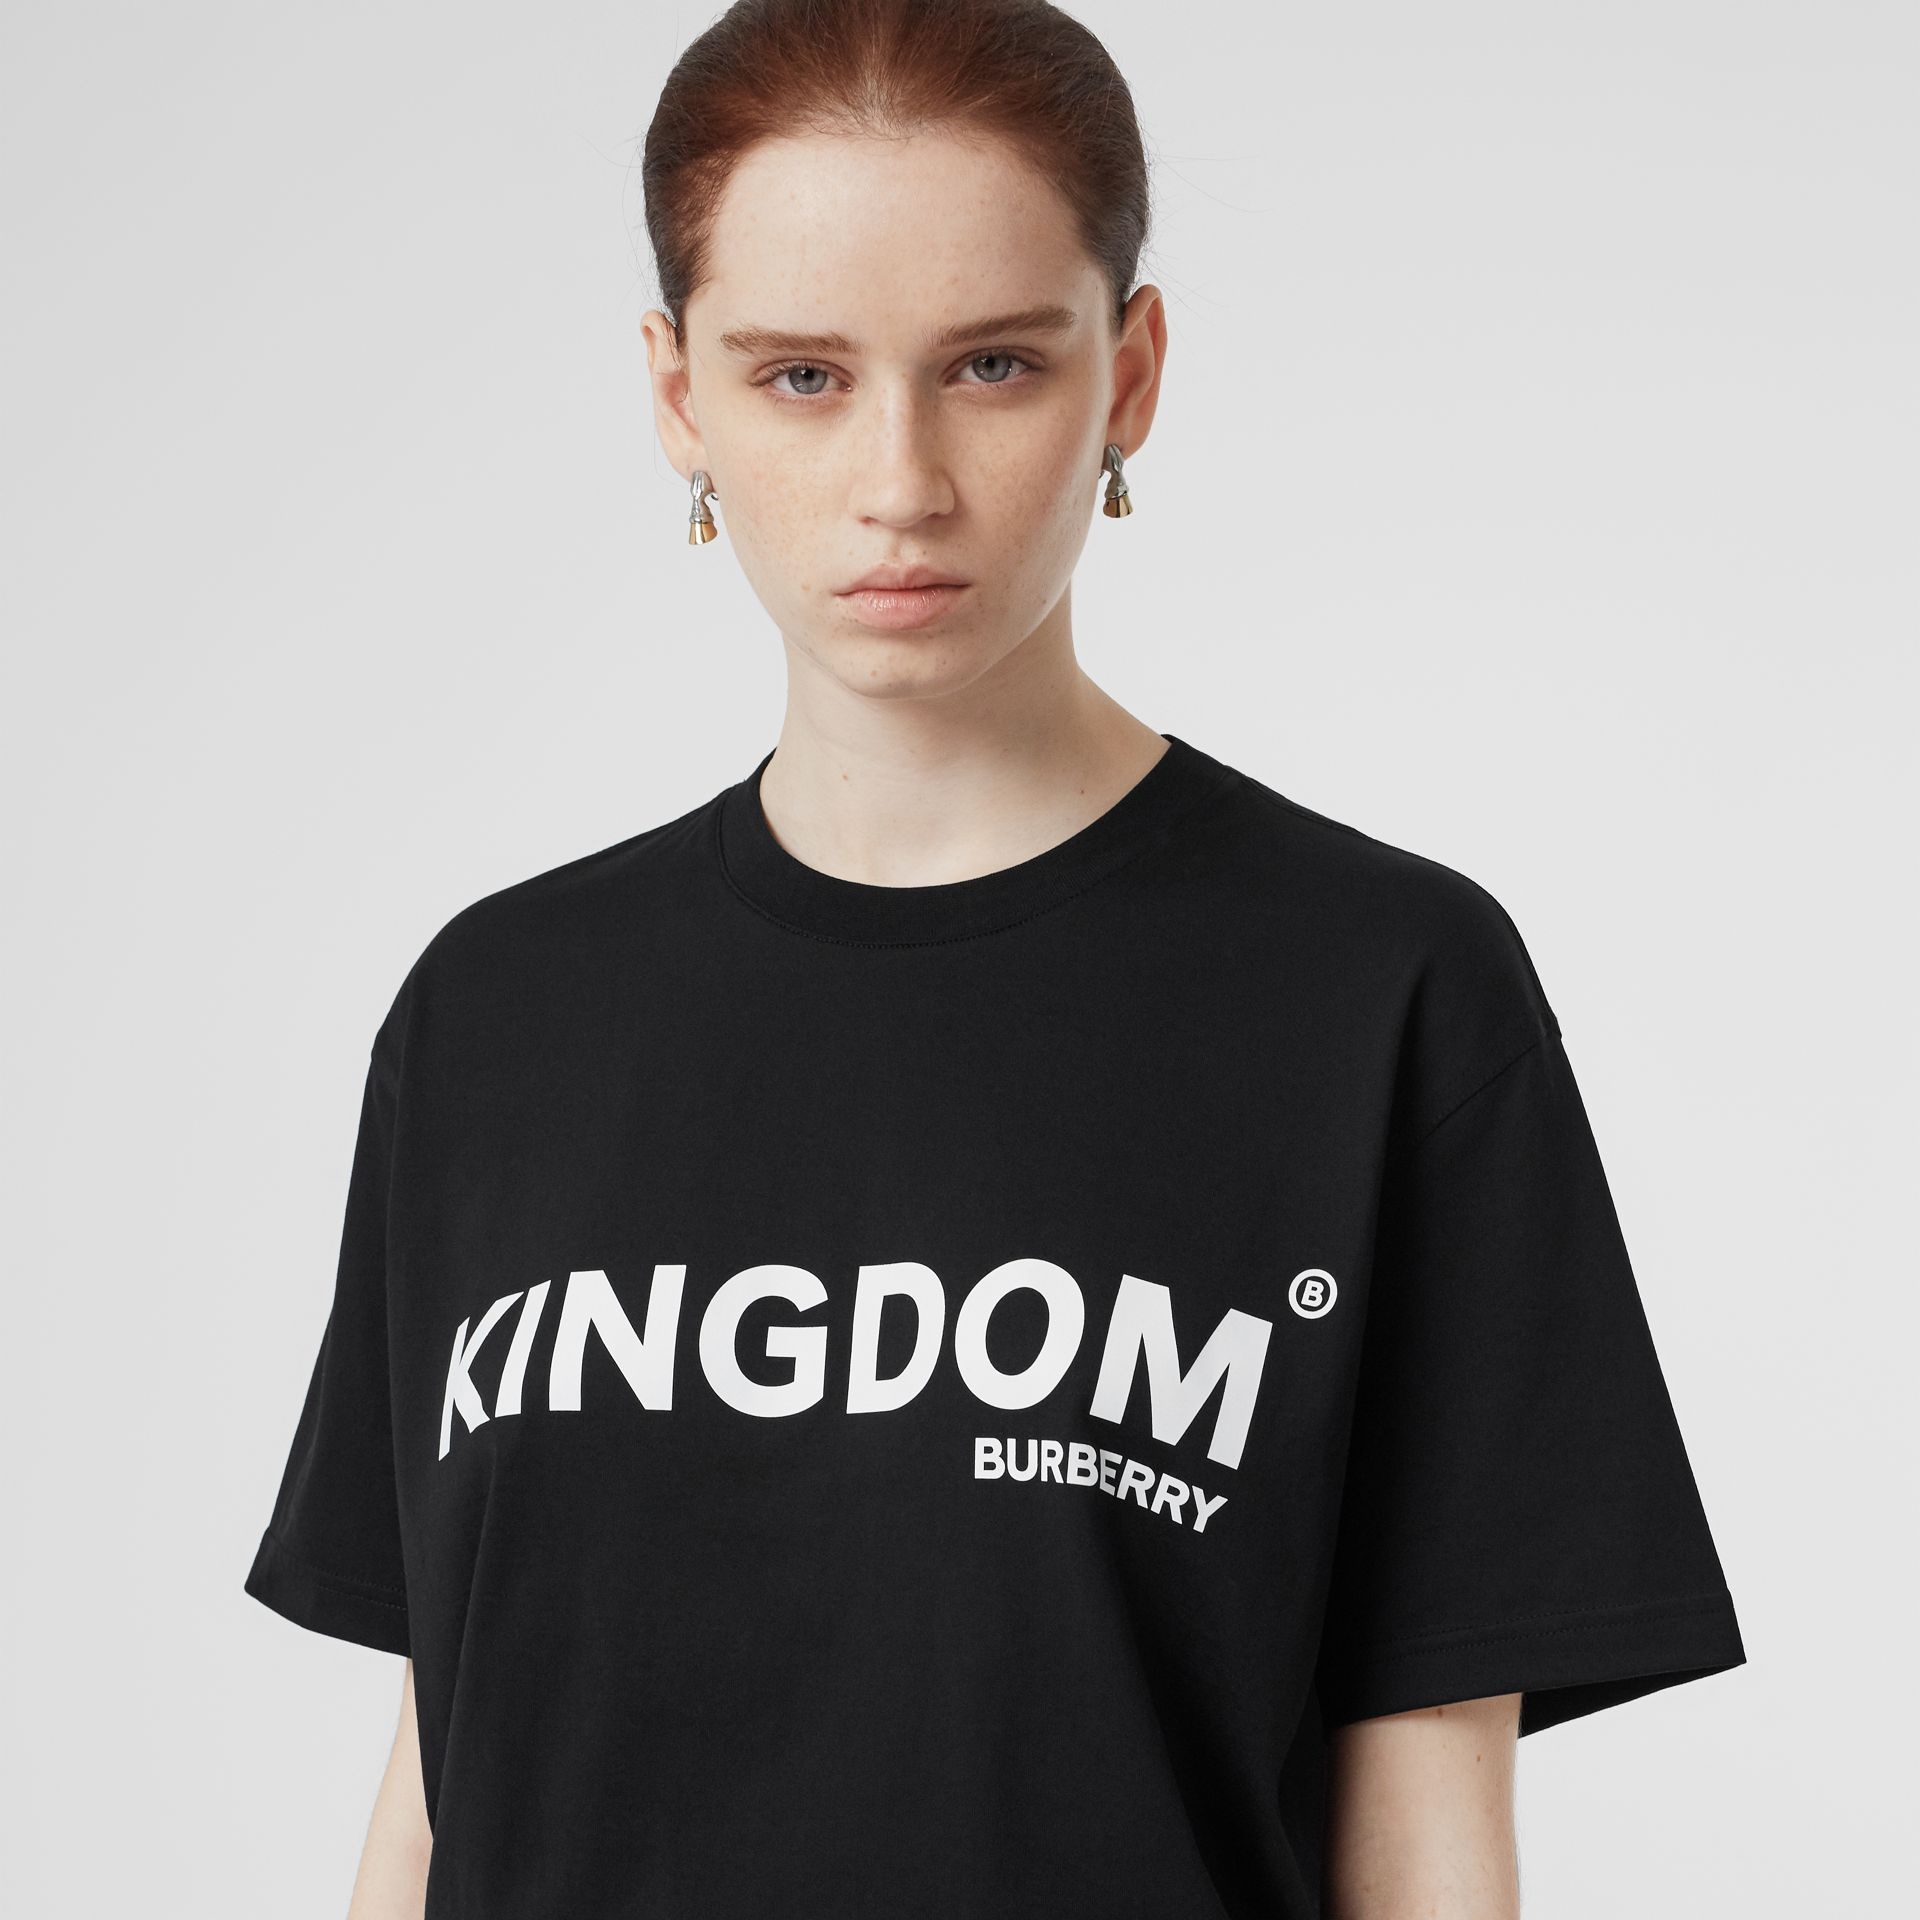 Kingdom Print Cotton Oversized T-shirt in Black - Women | Burberry - gallery image 1